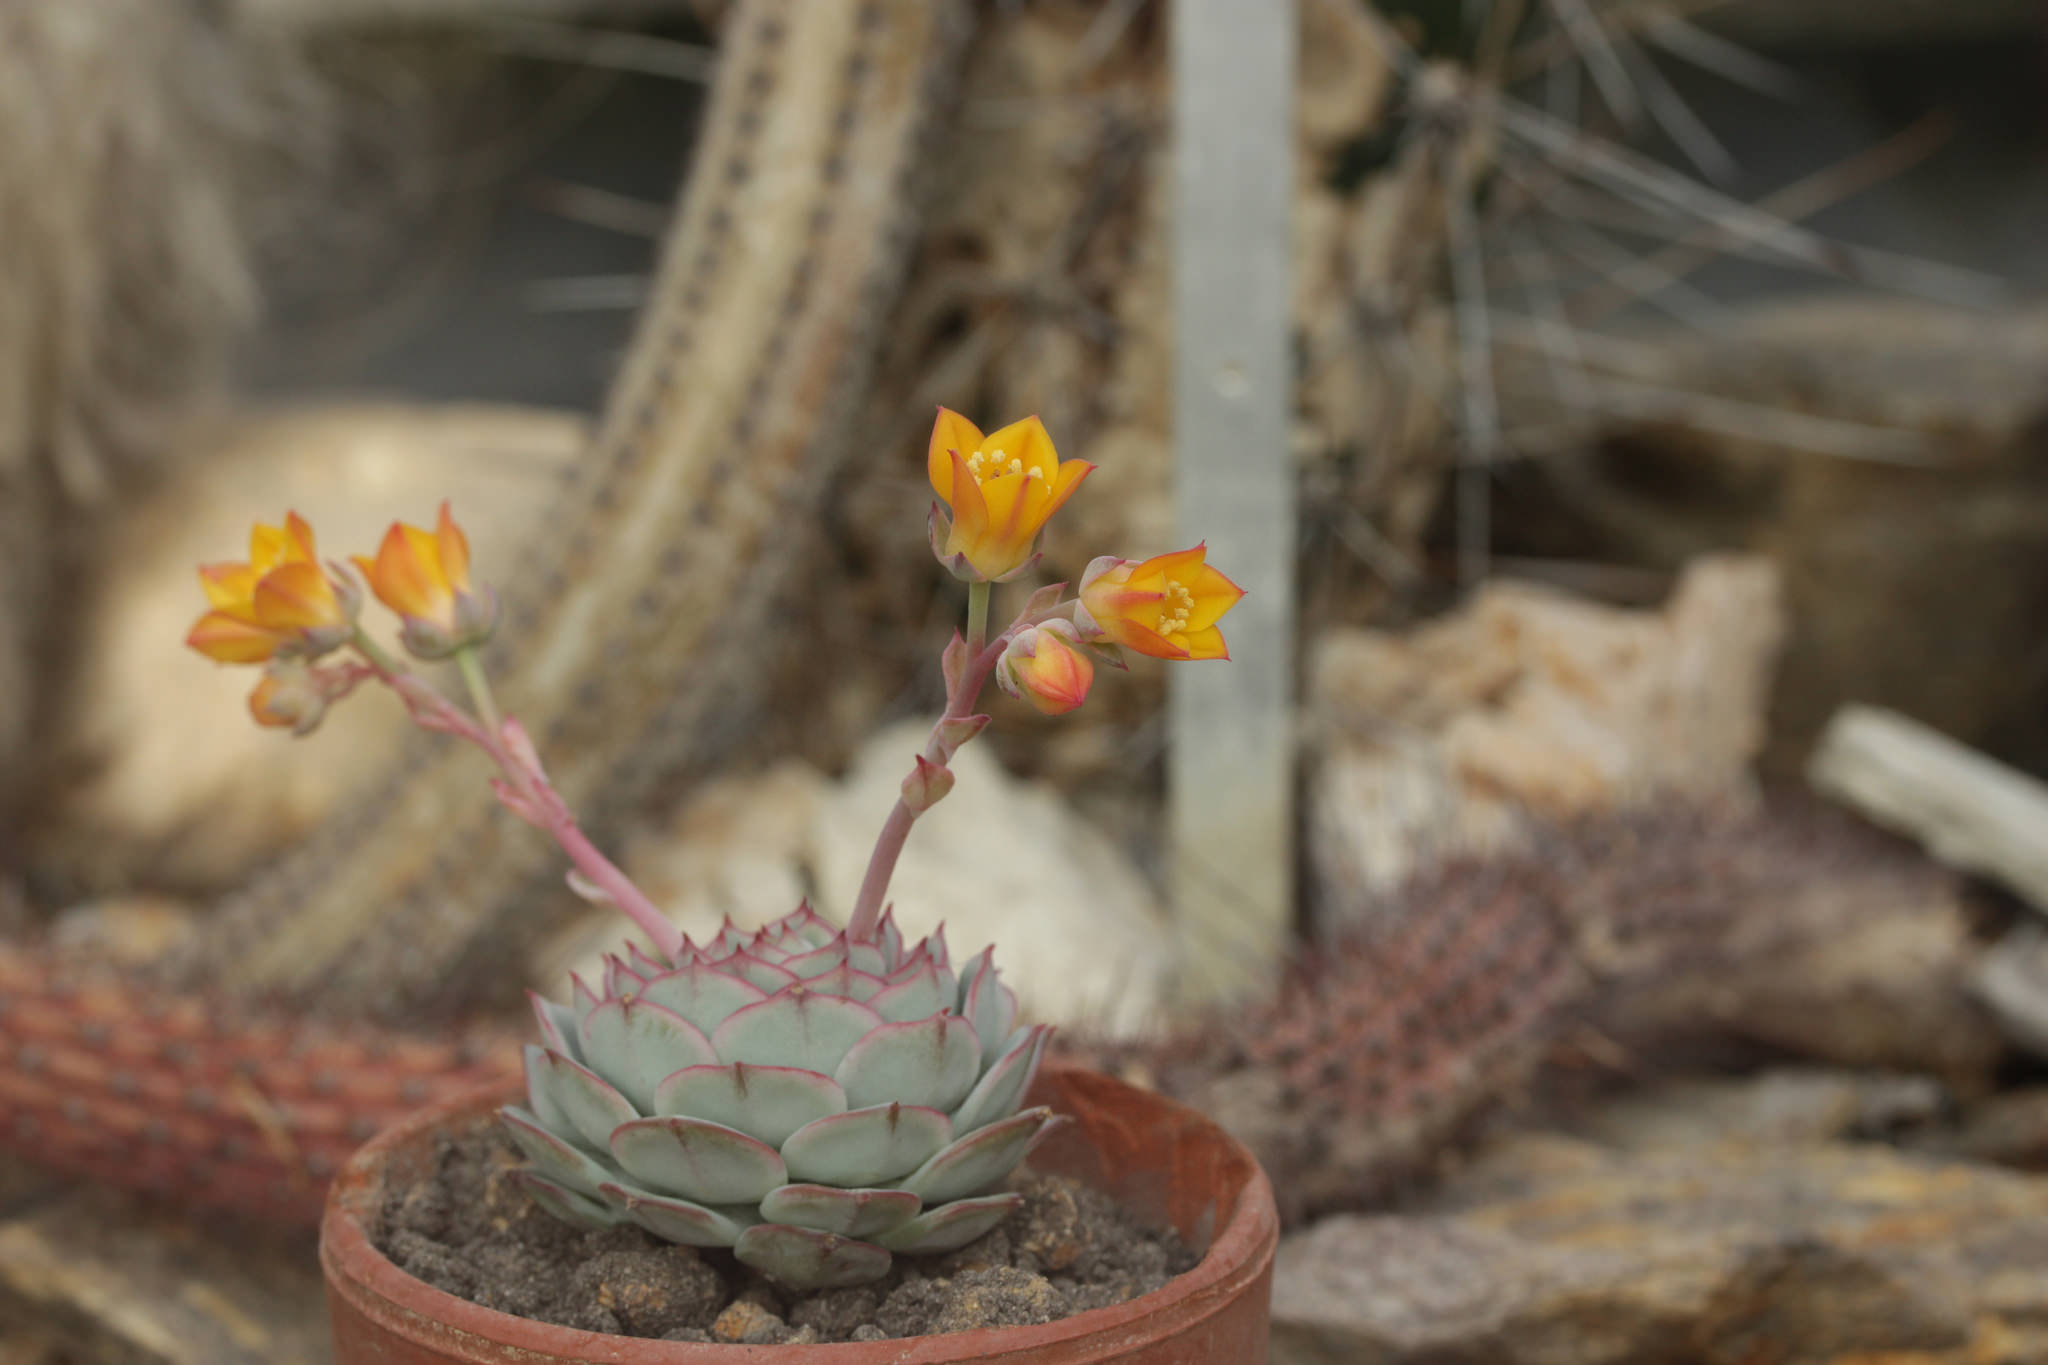 Painted lady echeveria (Echeveria derenbergii) in flower; photo courtesy of Flickr cc/Bjorn S...